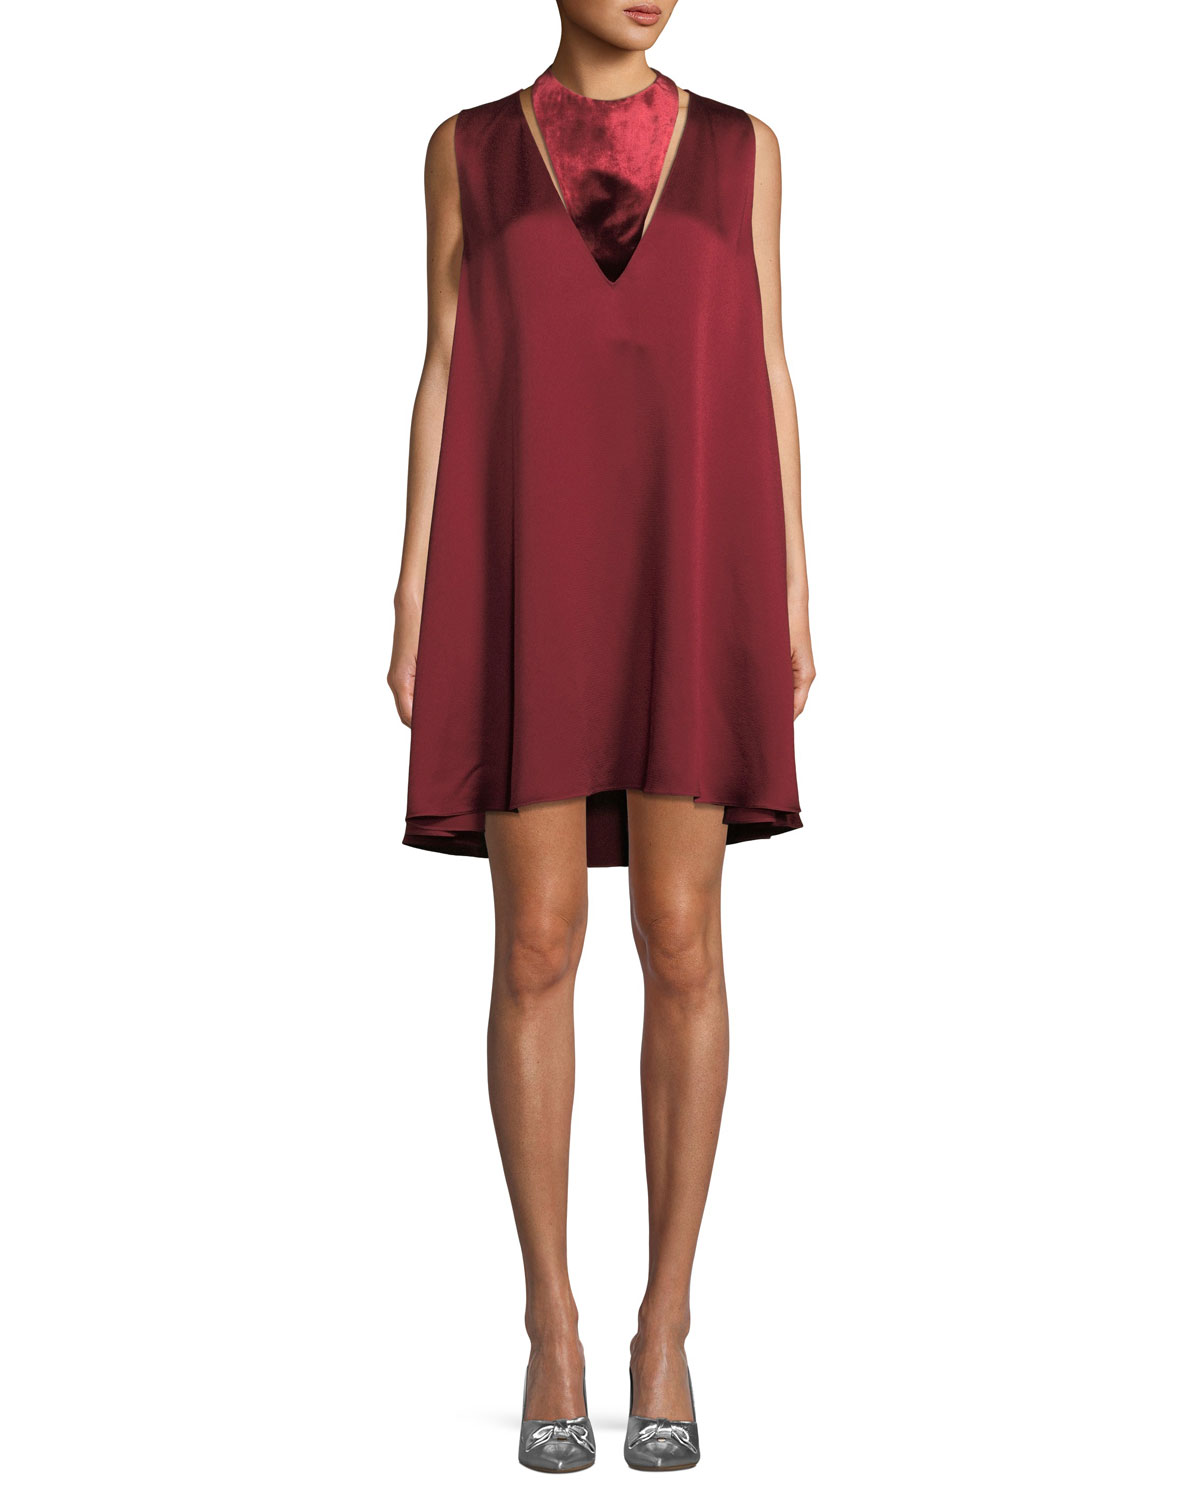 Sleeveless Hammered Satin Dress with Velvet Neck